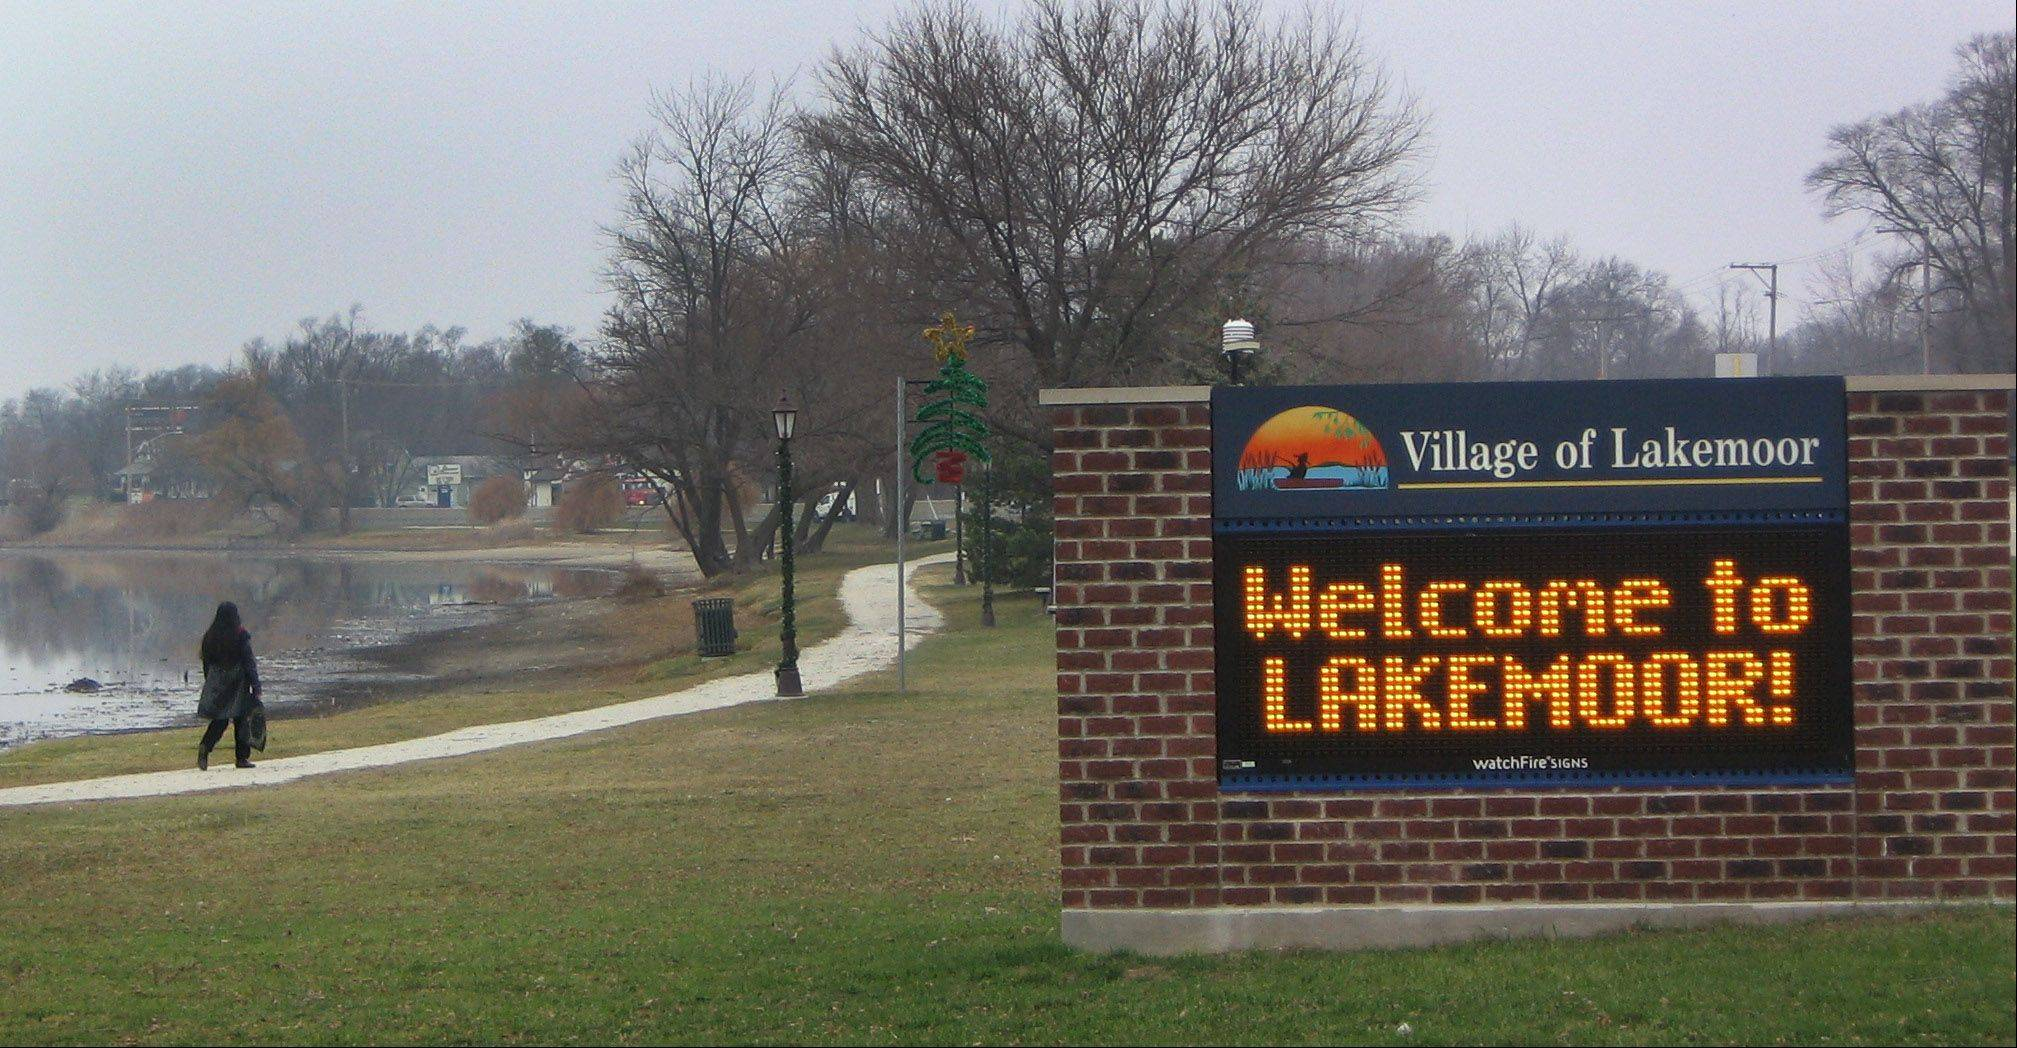 A revised comprehensive plan in Lakemoor suggests a walkable Town Center be developed along Route 120 near the old village hall and Lily Lake.